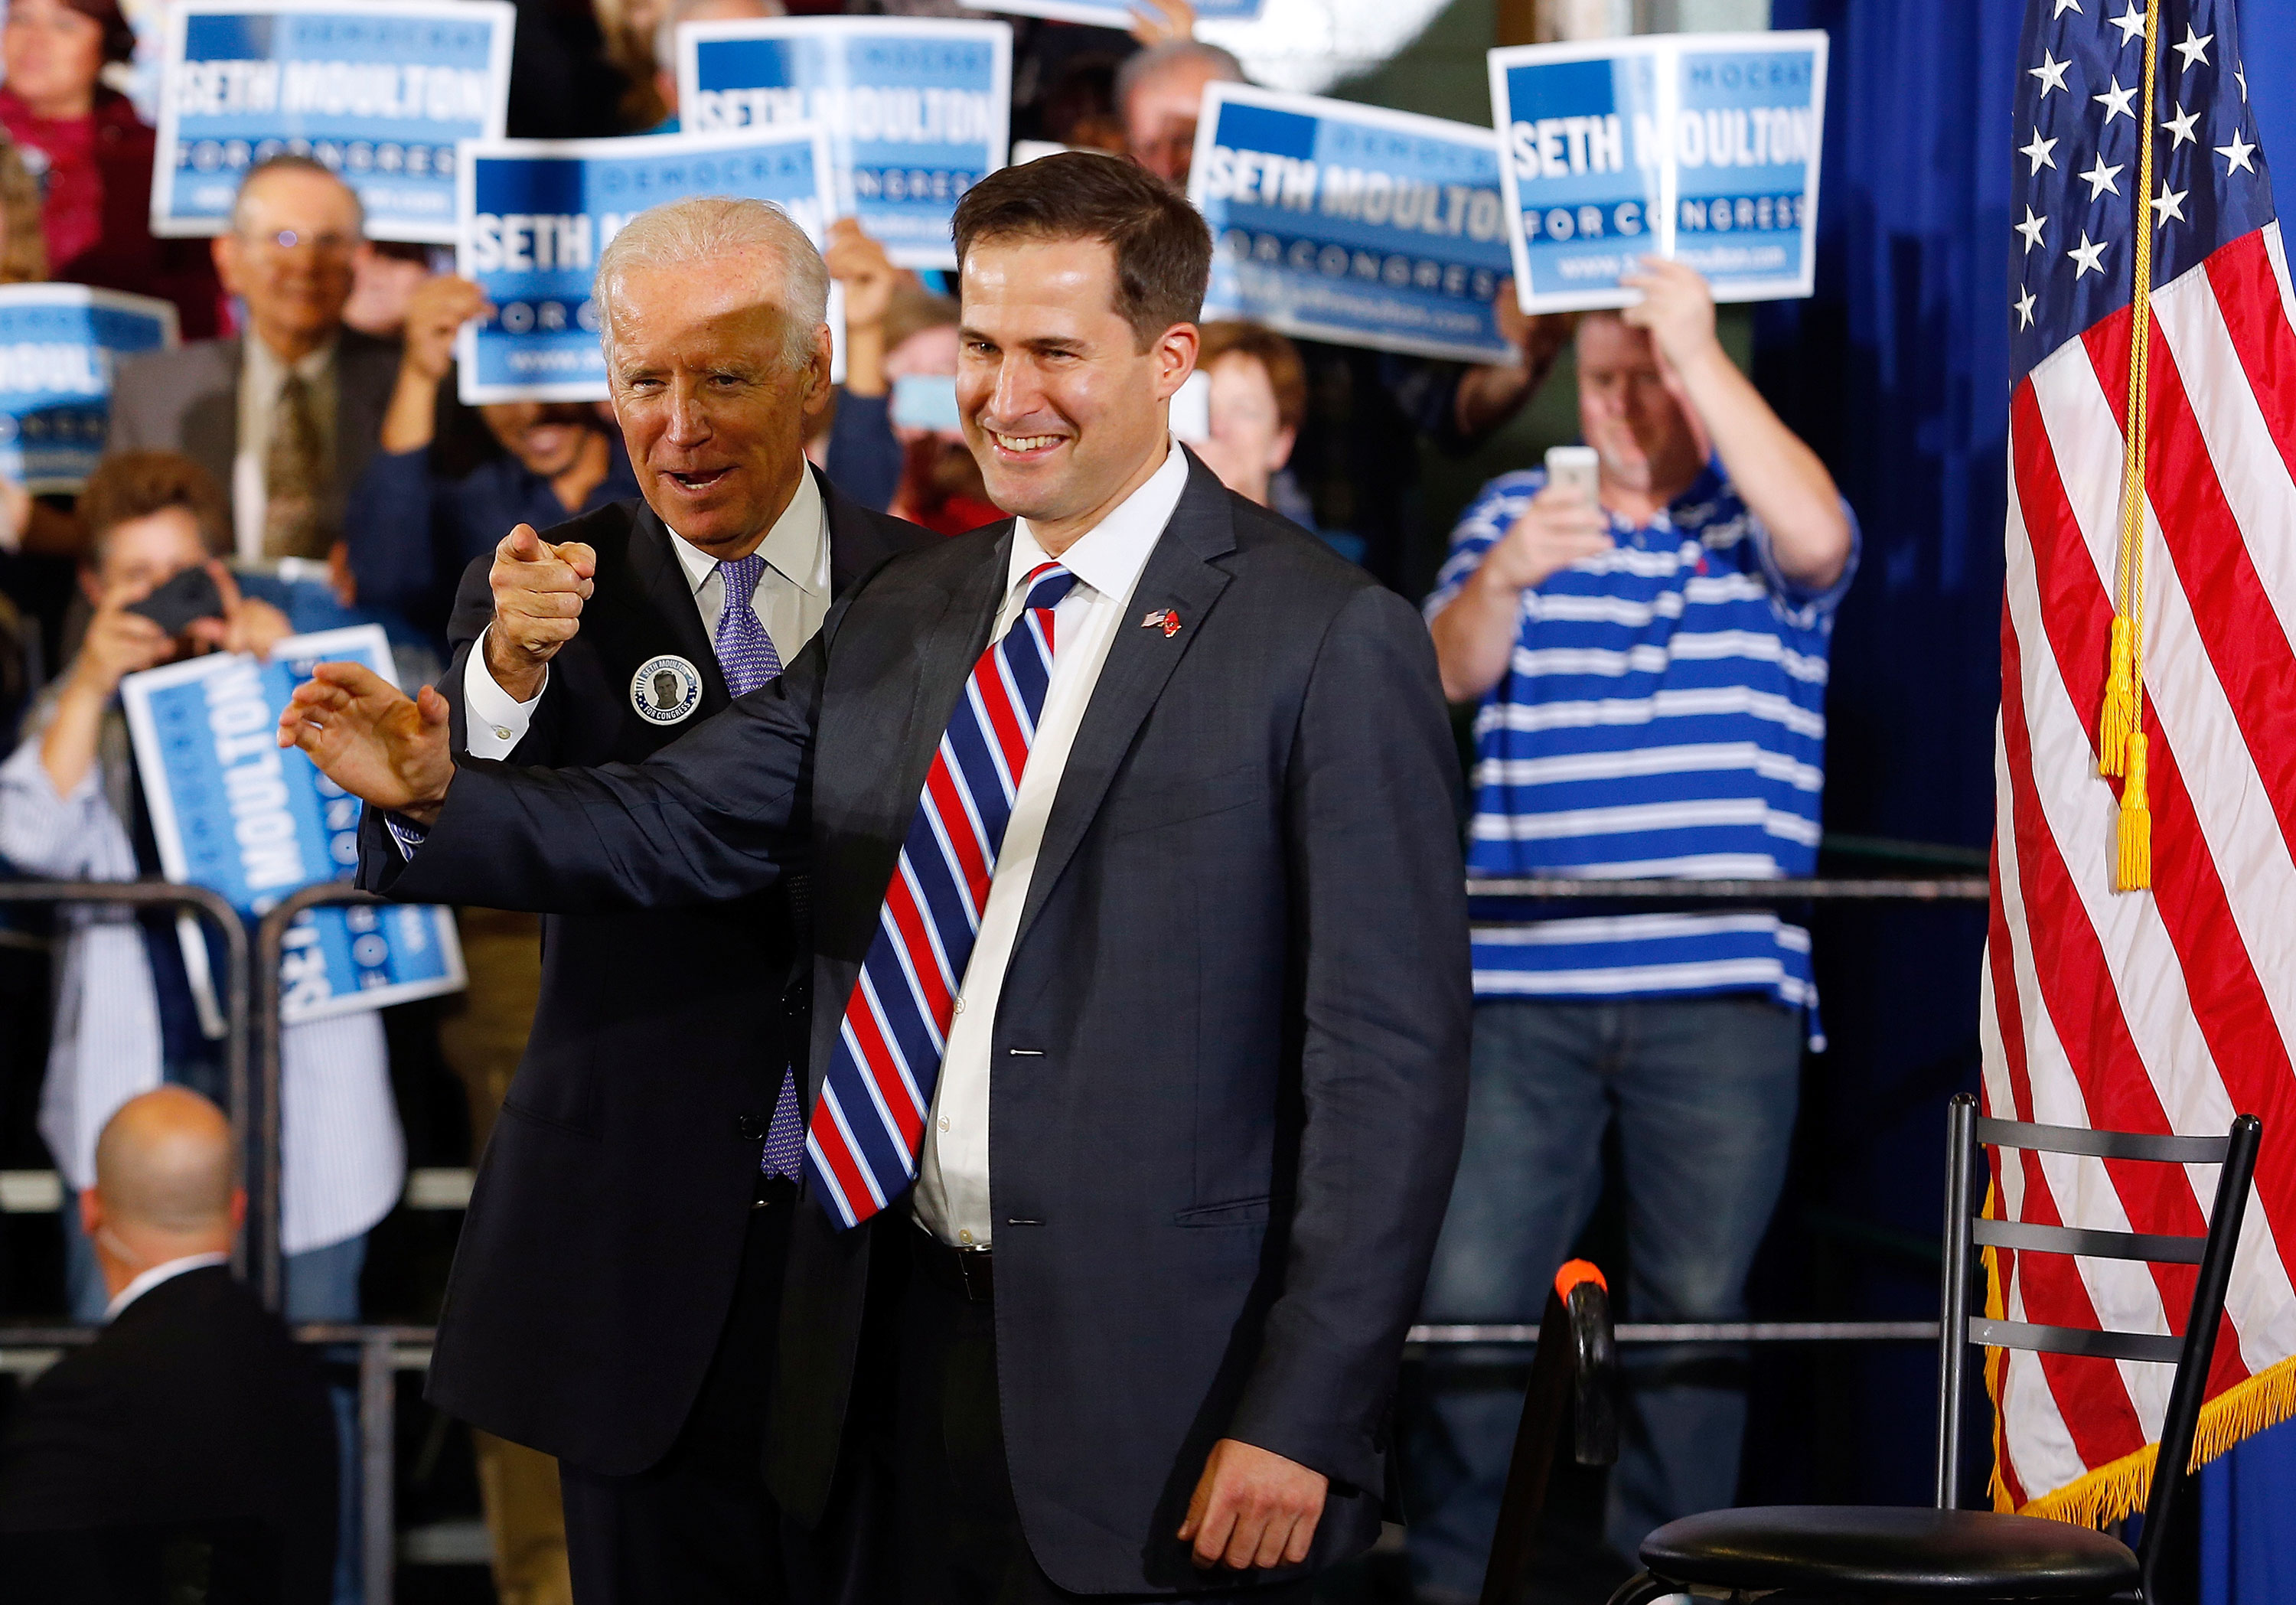 Rep. Seth Moulton endorses Joe Biden